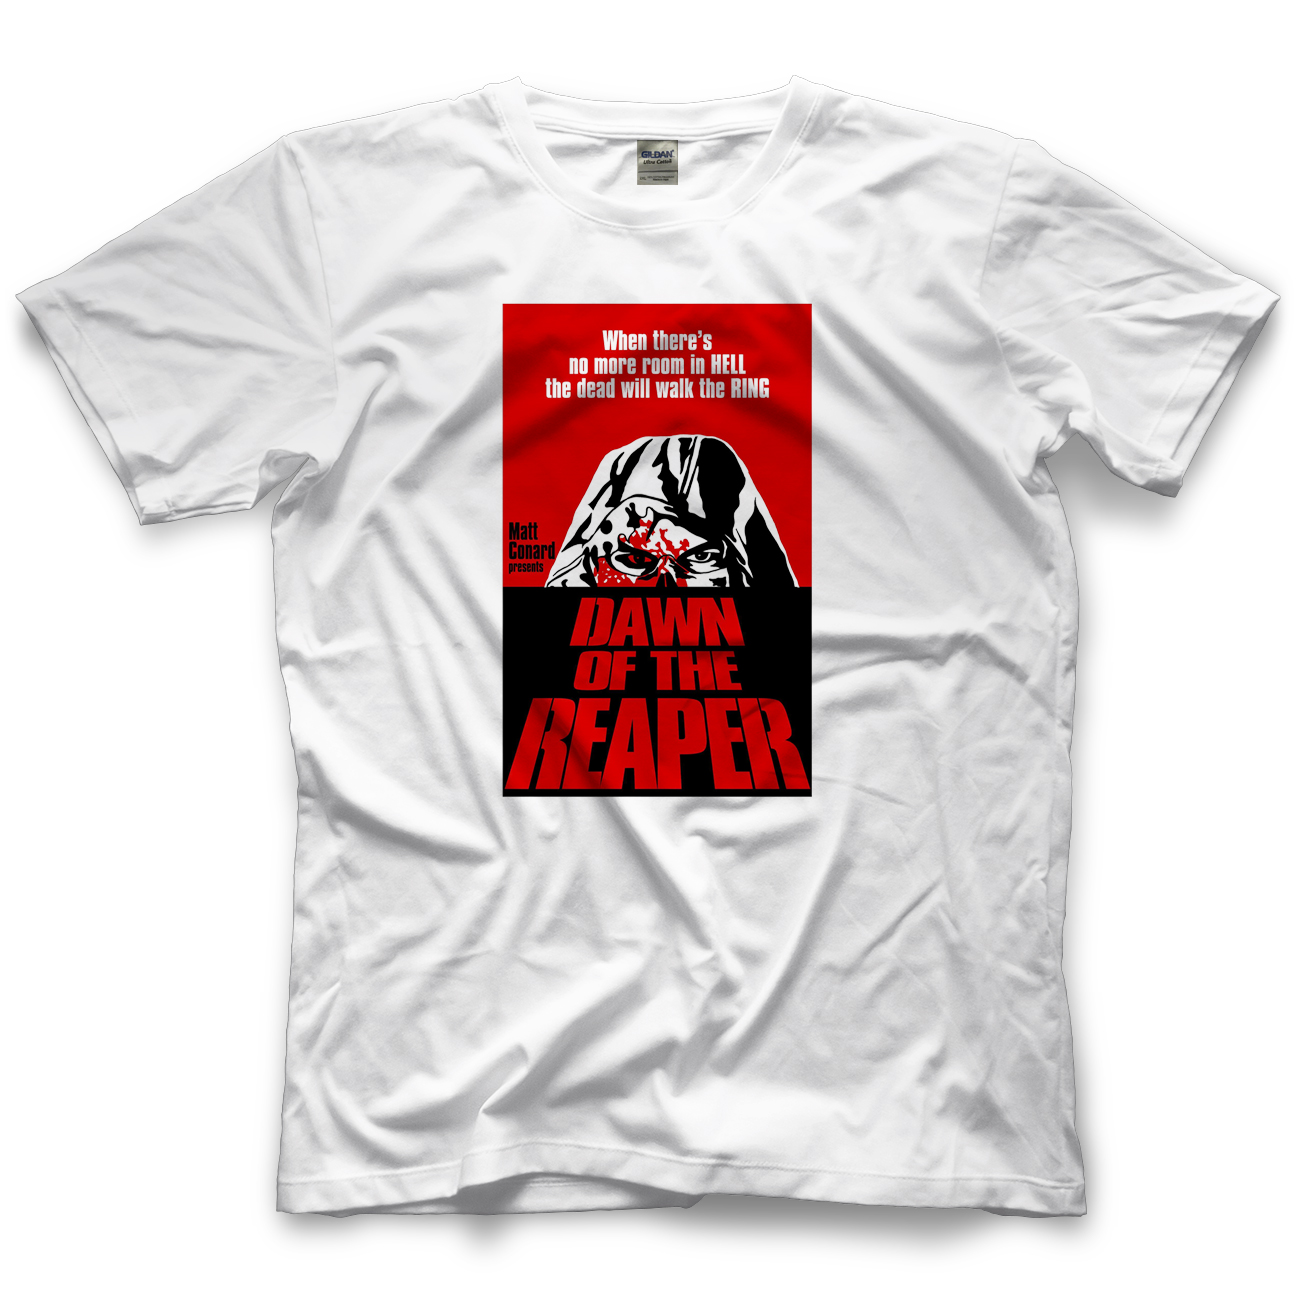 Dawn of the Reaper T-shirt